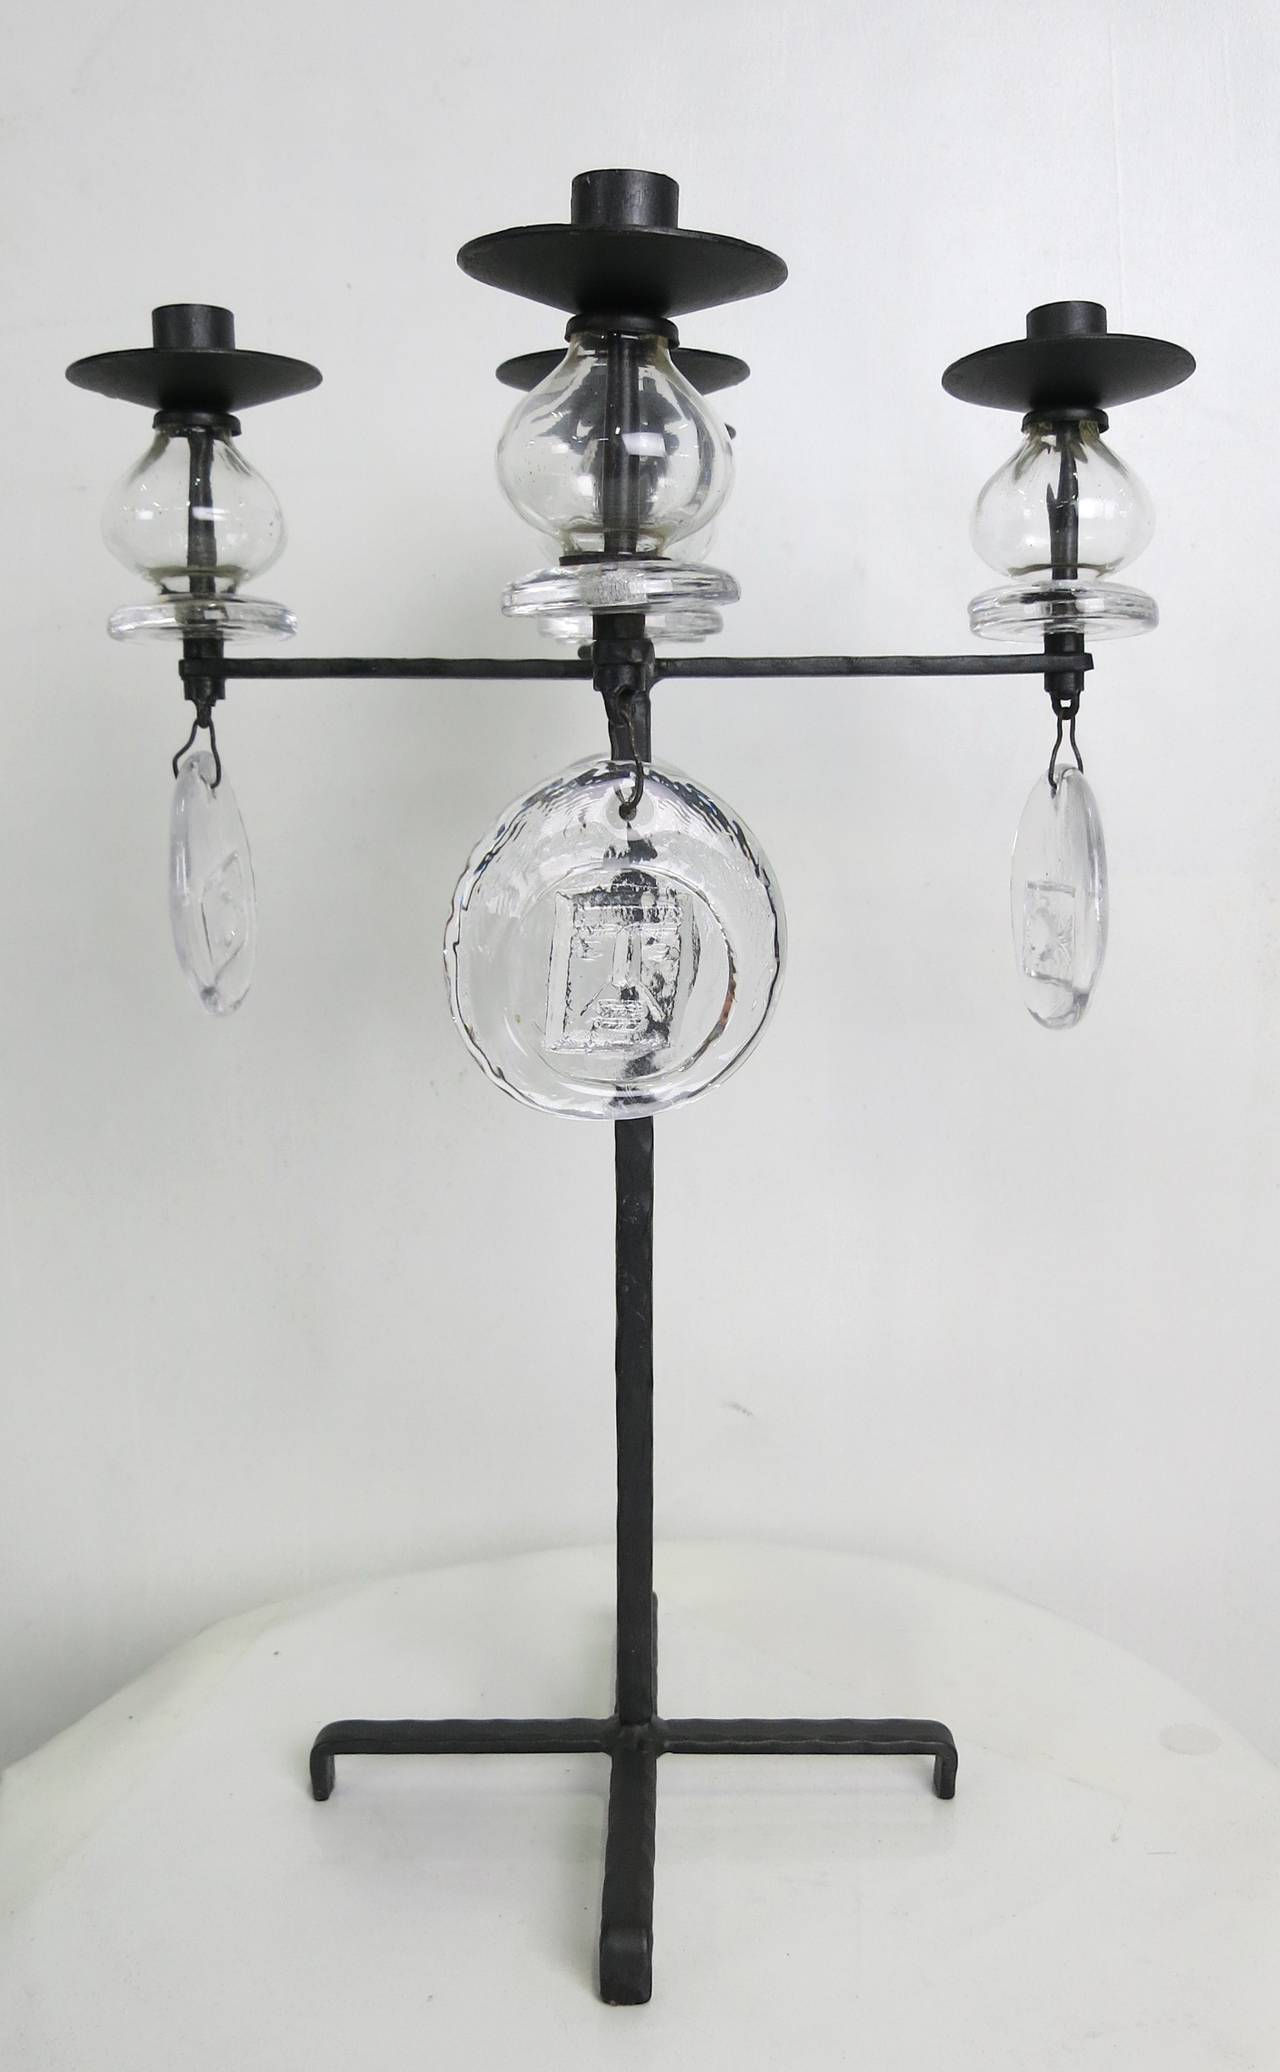 Rare and beautiful form candelabrum by Erik Hoglund for Kosta Boda. The hammered iron frame supports four arms and a central candle cup all raised on poppy form glass bulbs with round glass drops cast with signature Hoglund icons. The piece is in